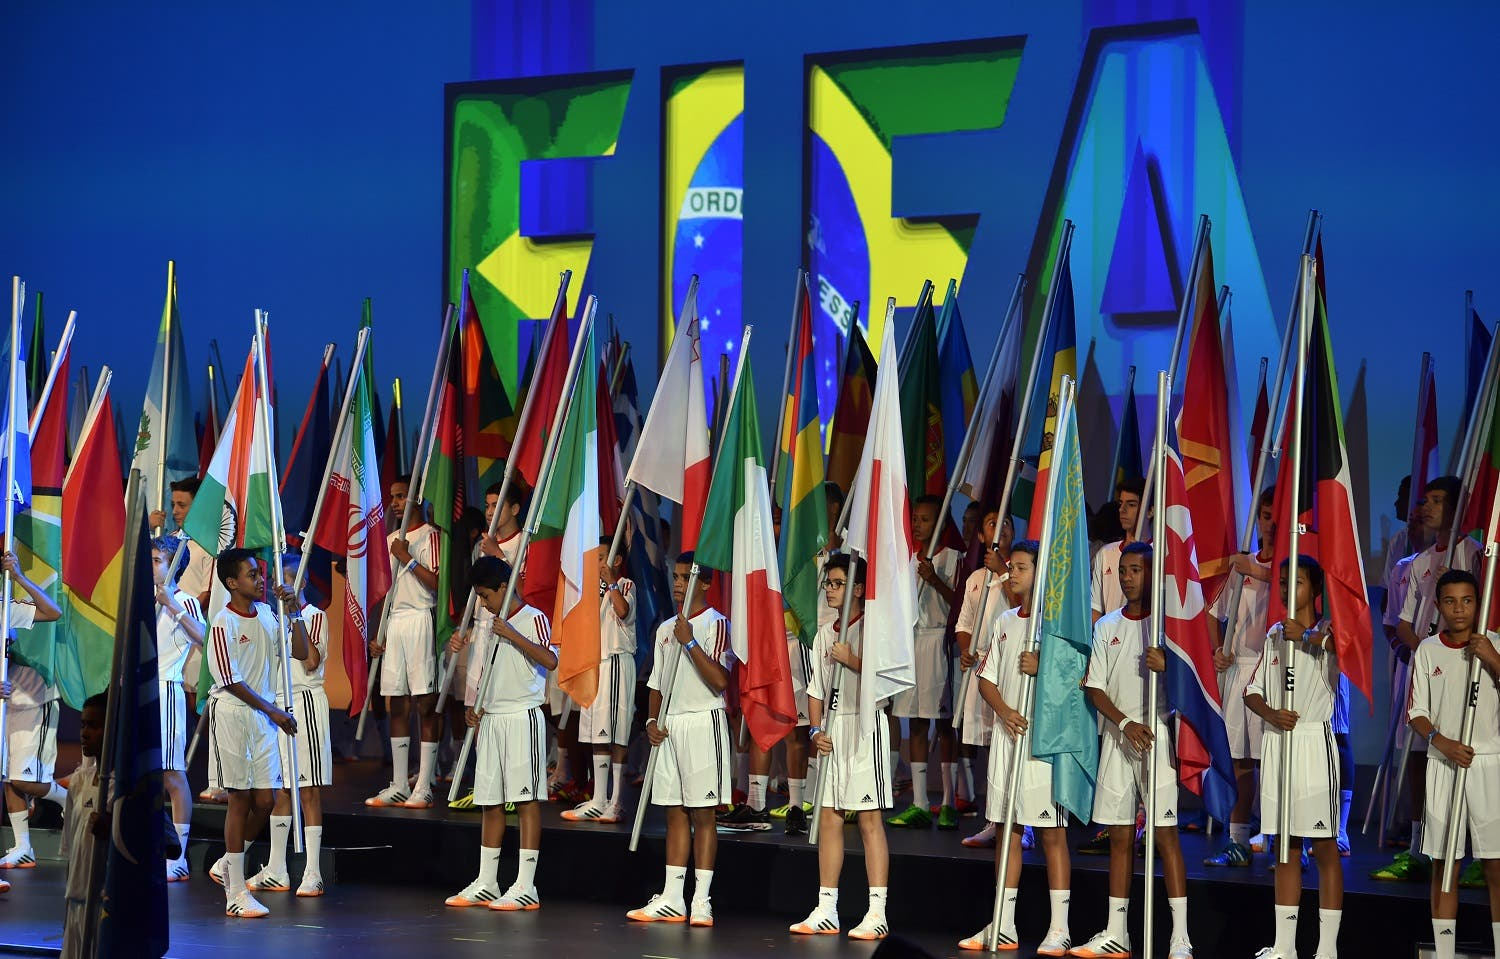 Children hold flags from various countries during opening ceremony of the FIFA Congress in Sao Paulo on June 10, 2014. (AFP)